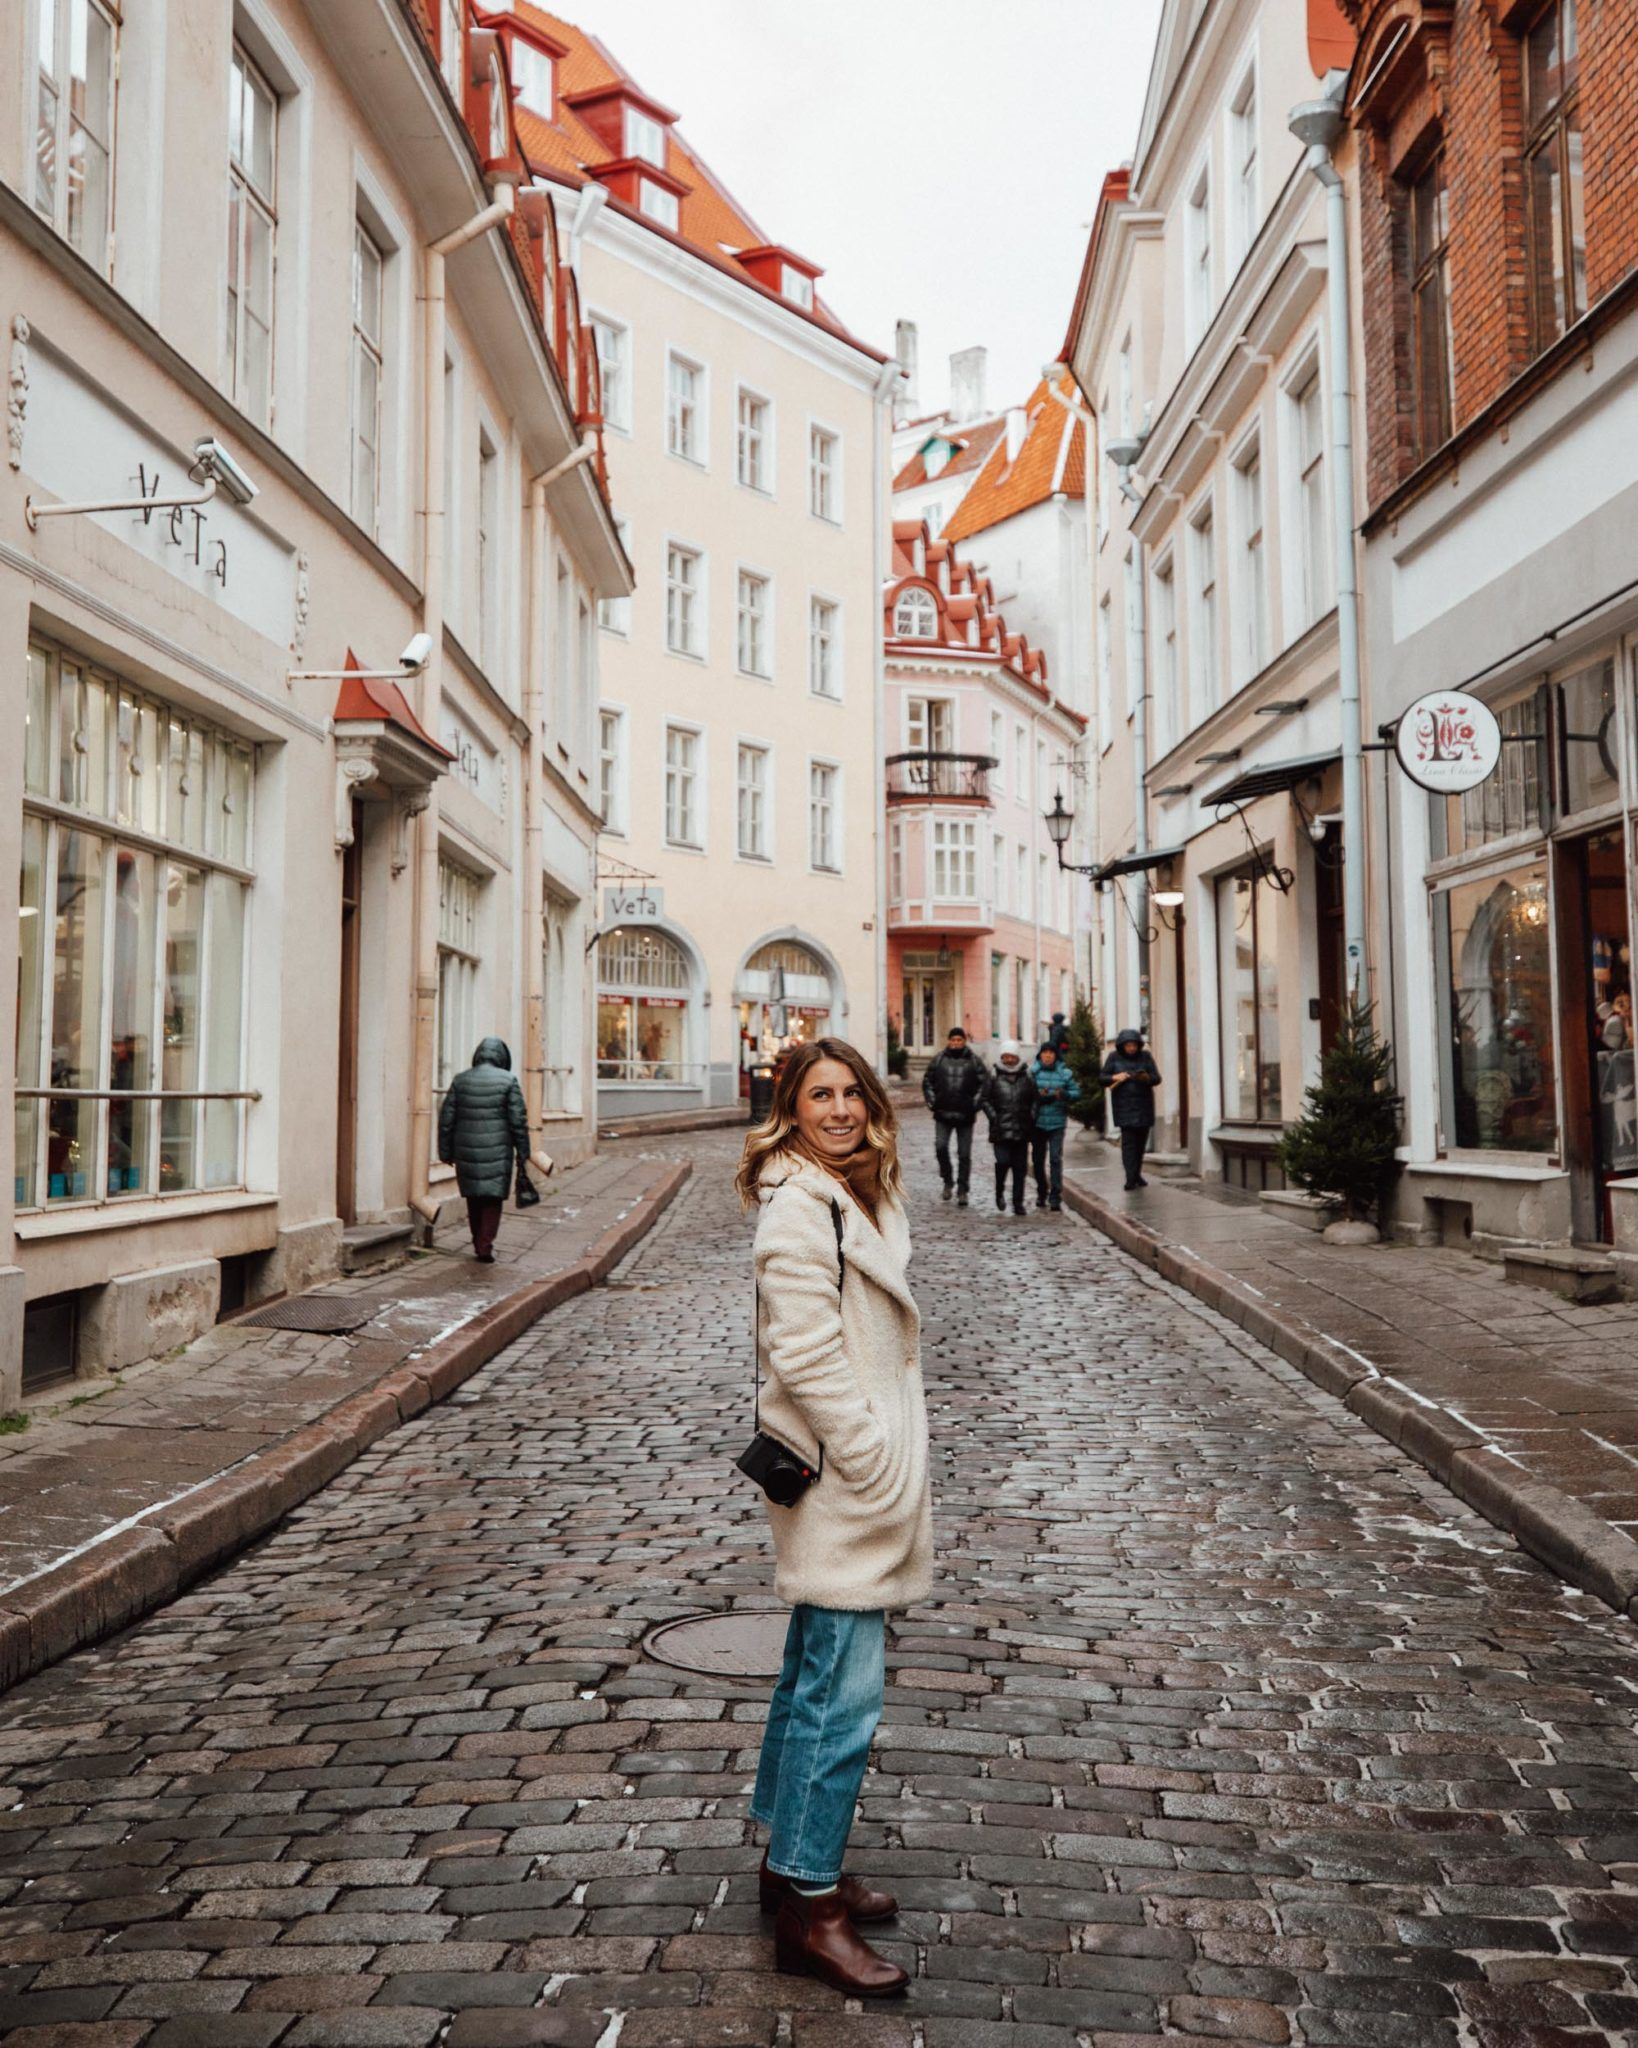 Tallinn Estonia during Christmas Markets in Winter | Our Baltic road trip itinerary includes Christmas market ideas for some lesser known European cities that shouldn't be missed. Click through to find out where we stayed, ate and explored in Estonia, Latvia and Lithuania! #christmasmarkets #europetravel #wintertravel #christmastraditions #riga #tallin #vilnius #estonia #lithuania #finduslost